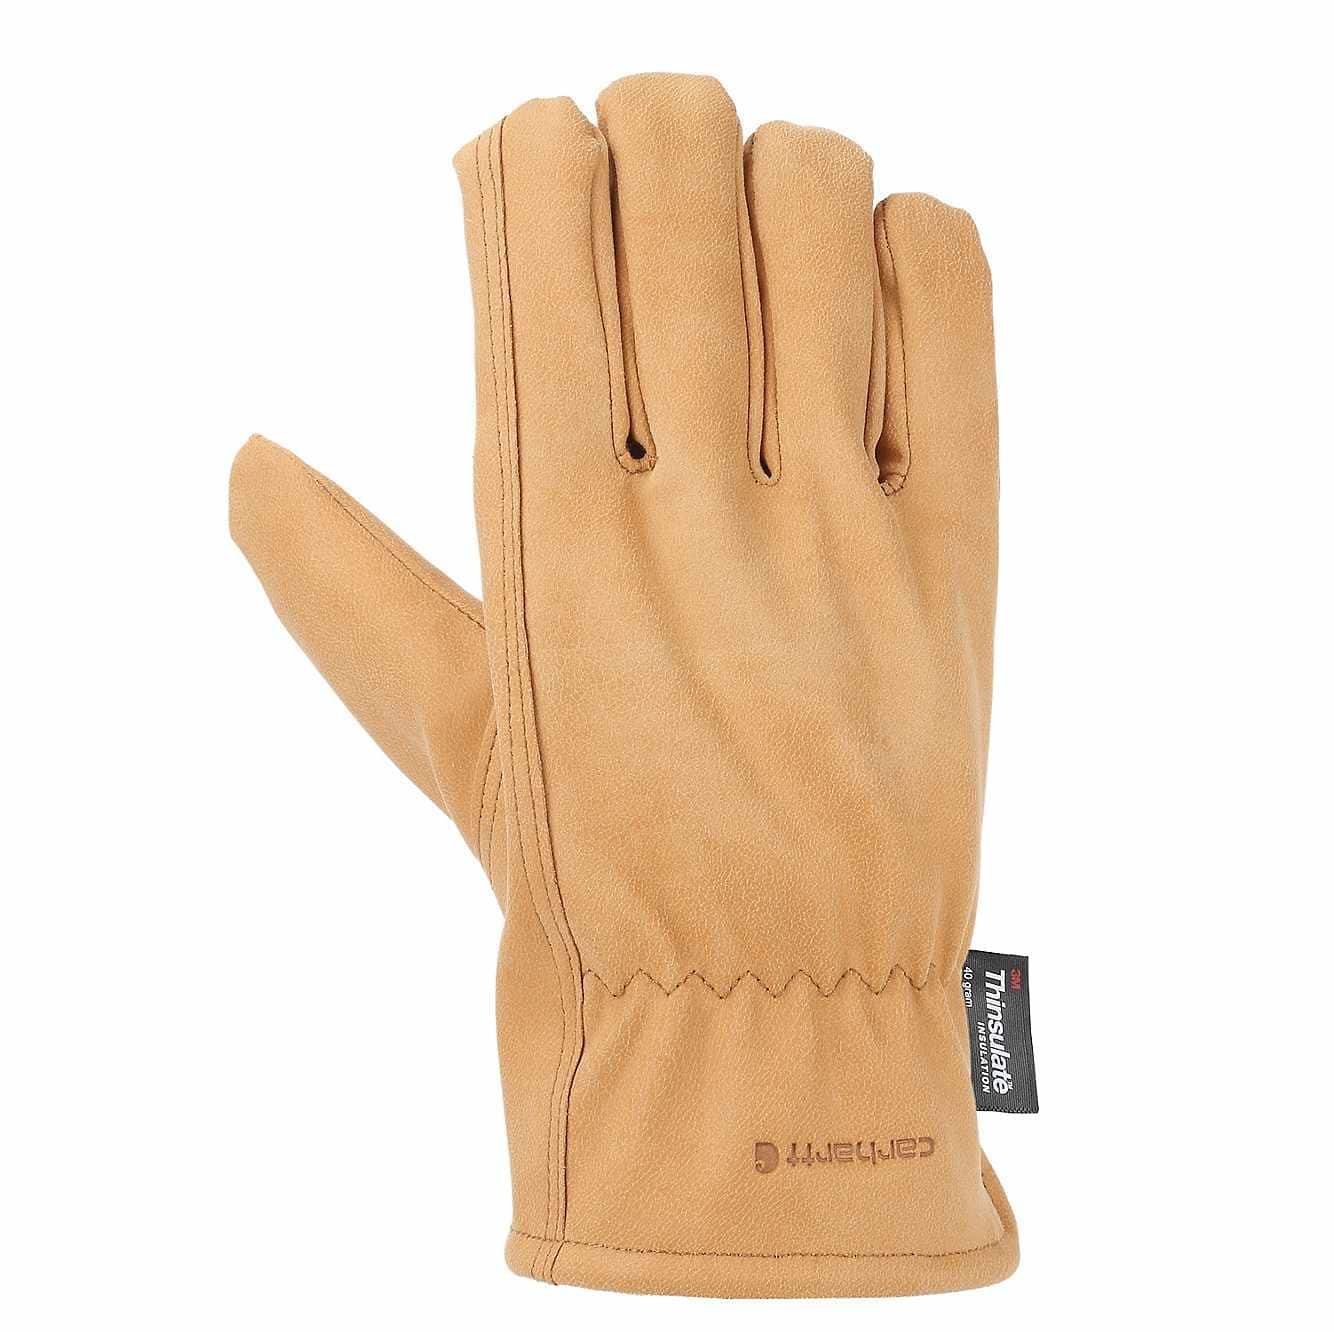 Picture of Insulated Driver Glove in Carhartt Brown